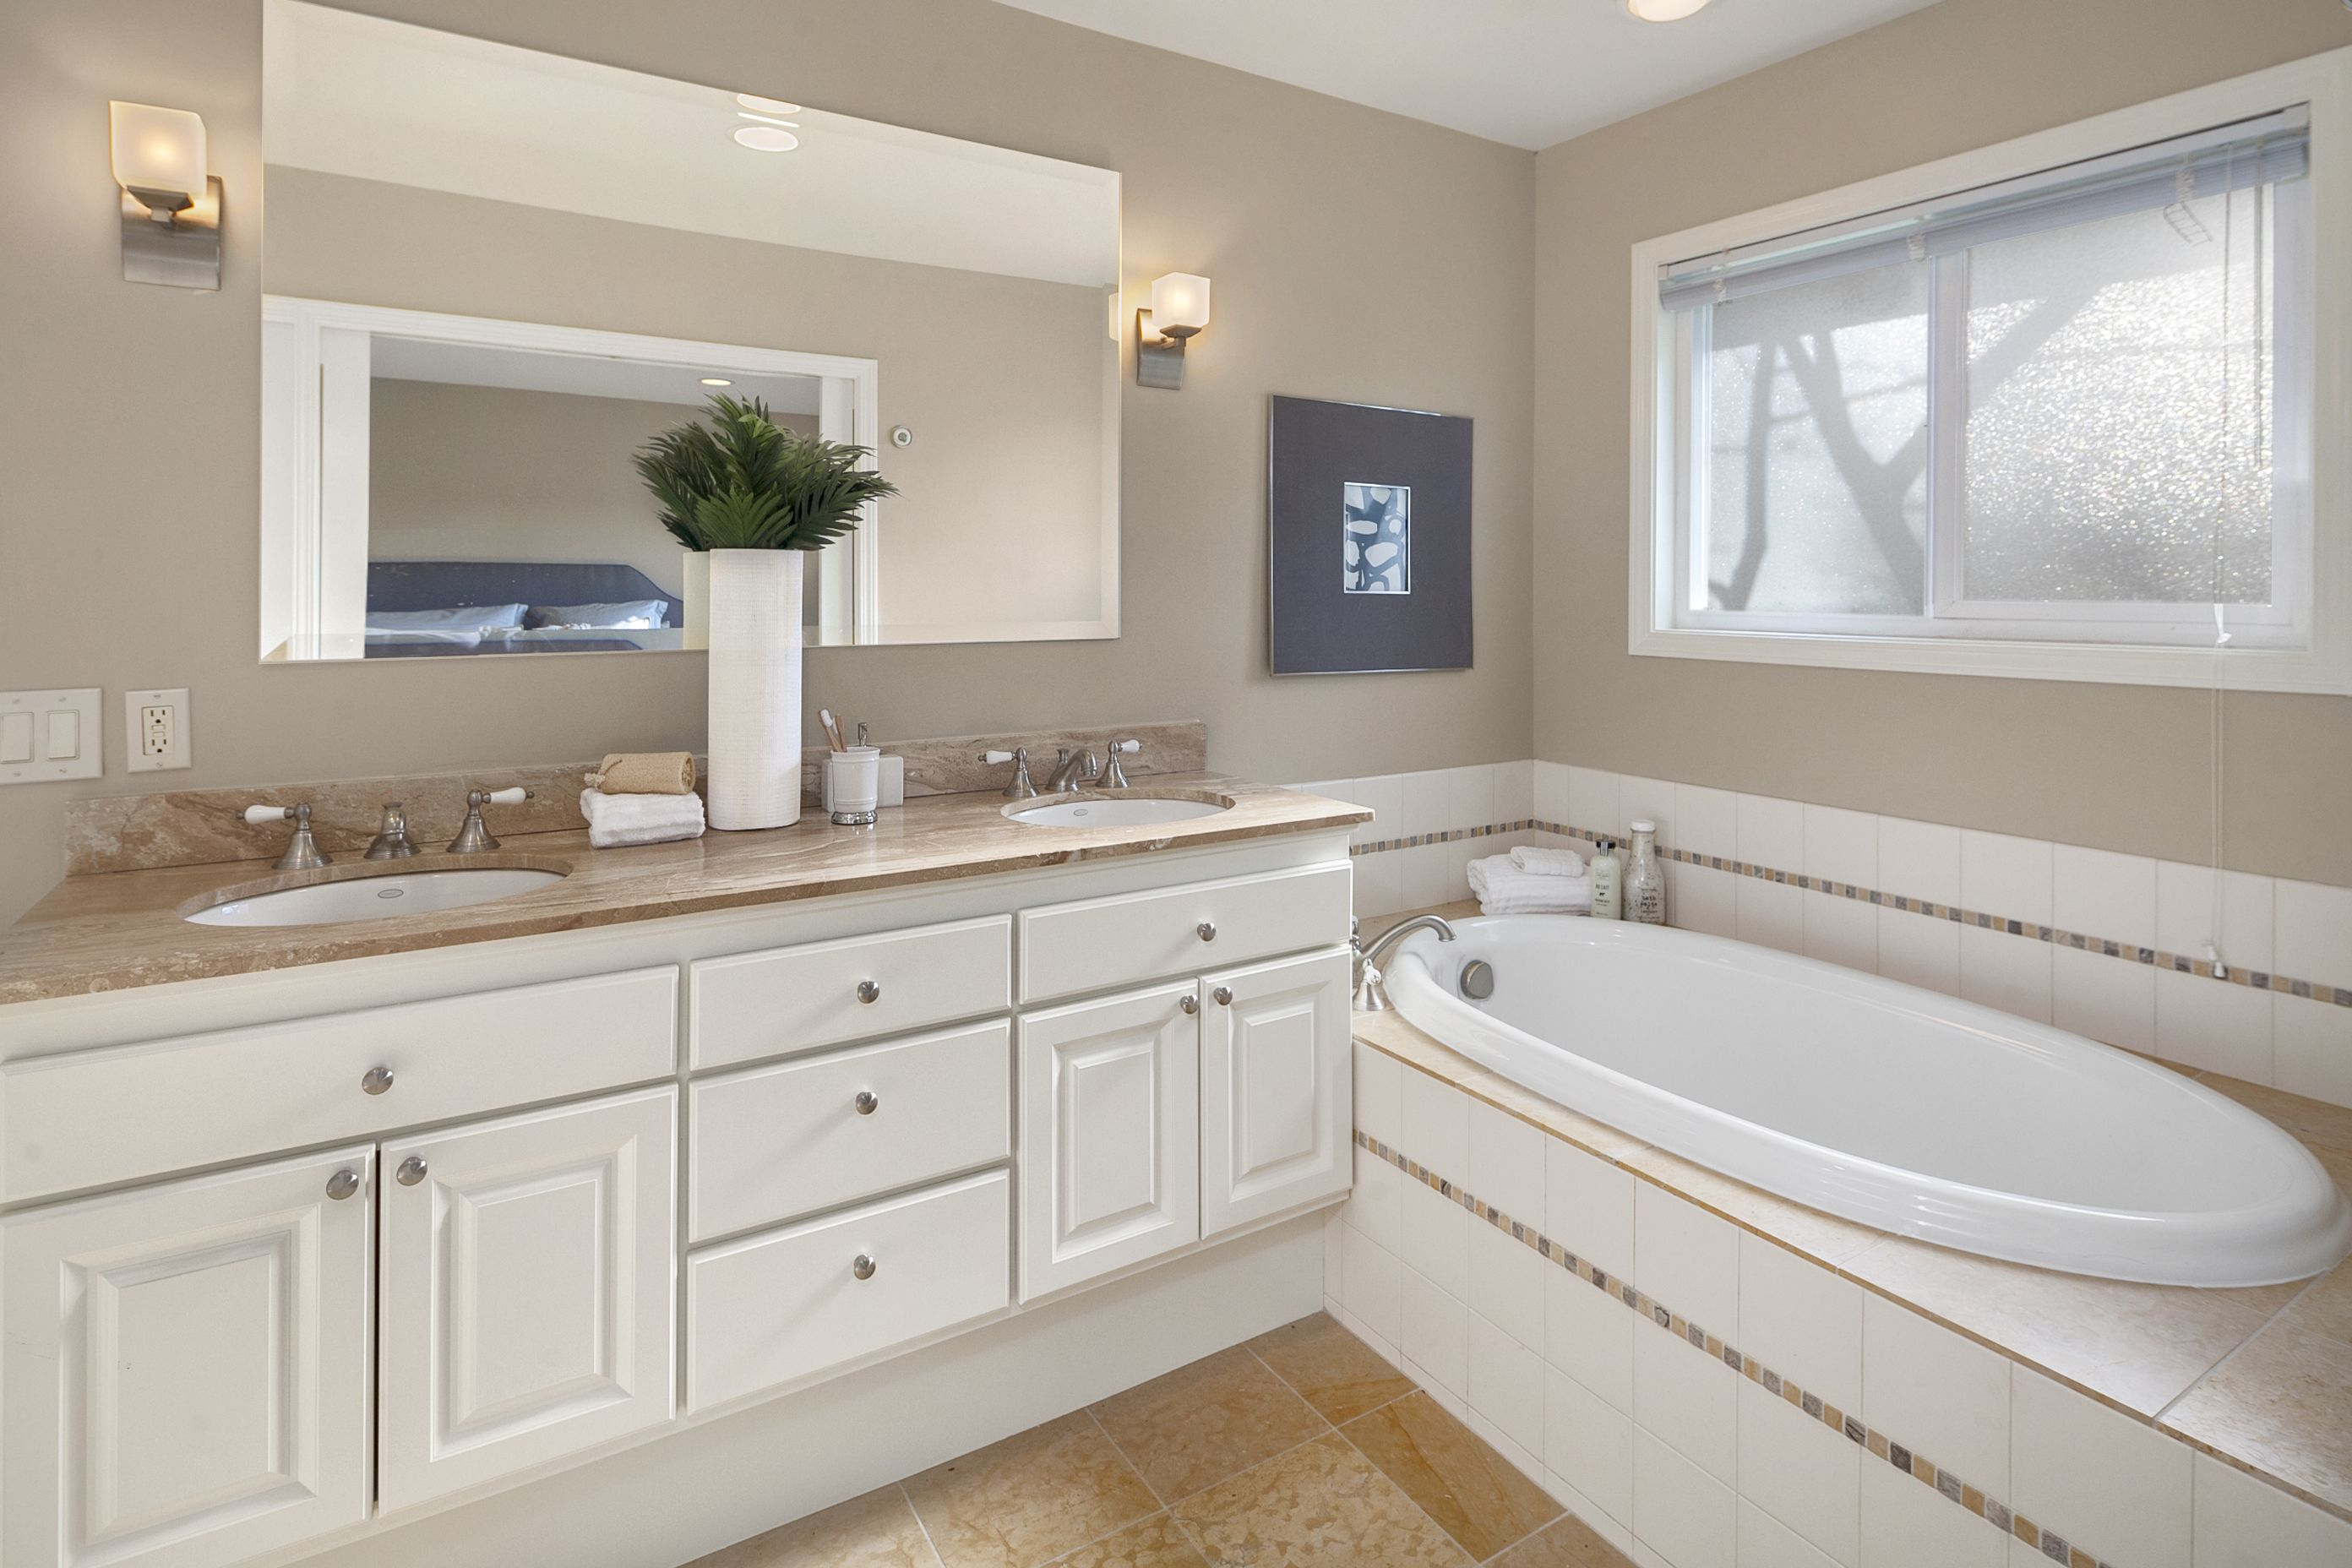 remodel home for countertops painted nest project spray paint bathroom newman diy howtospraypaintcountertops s